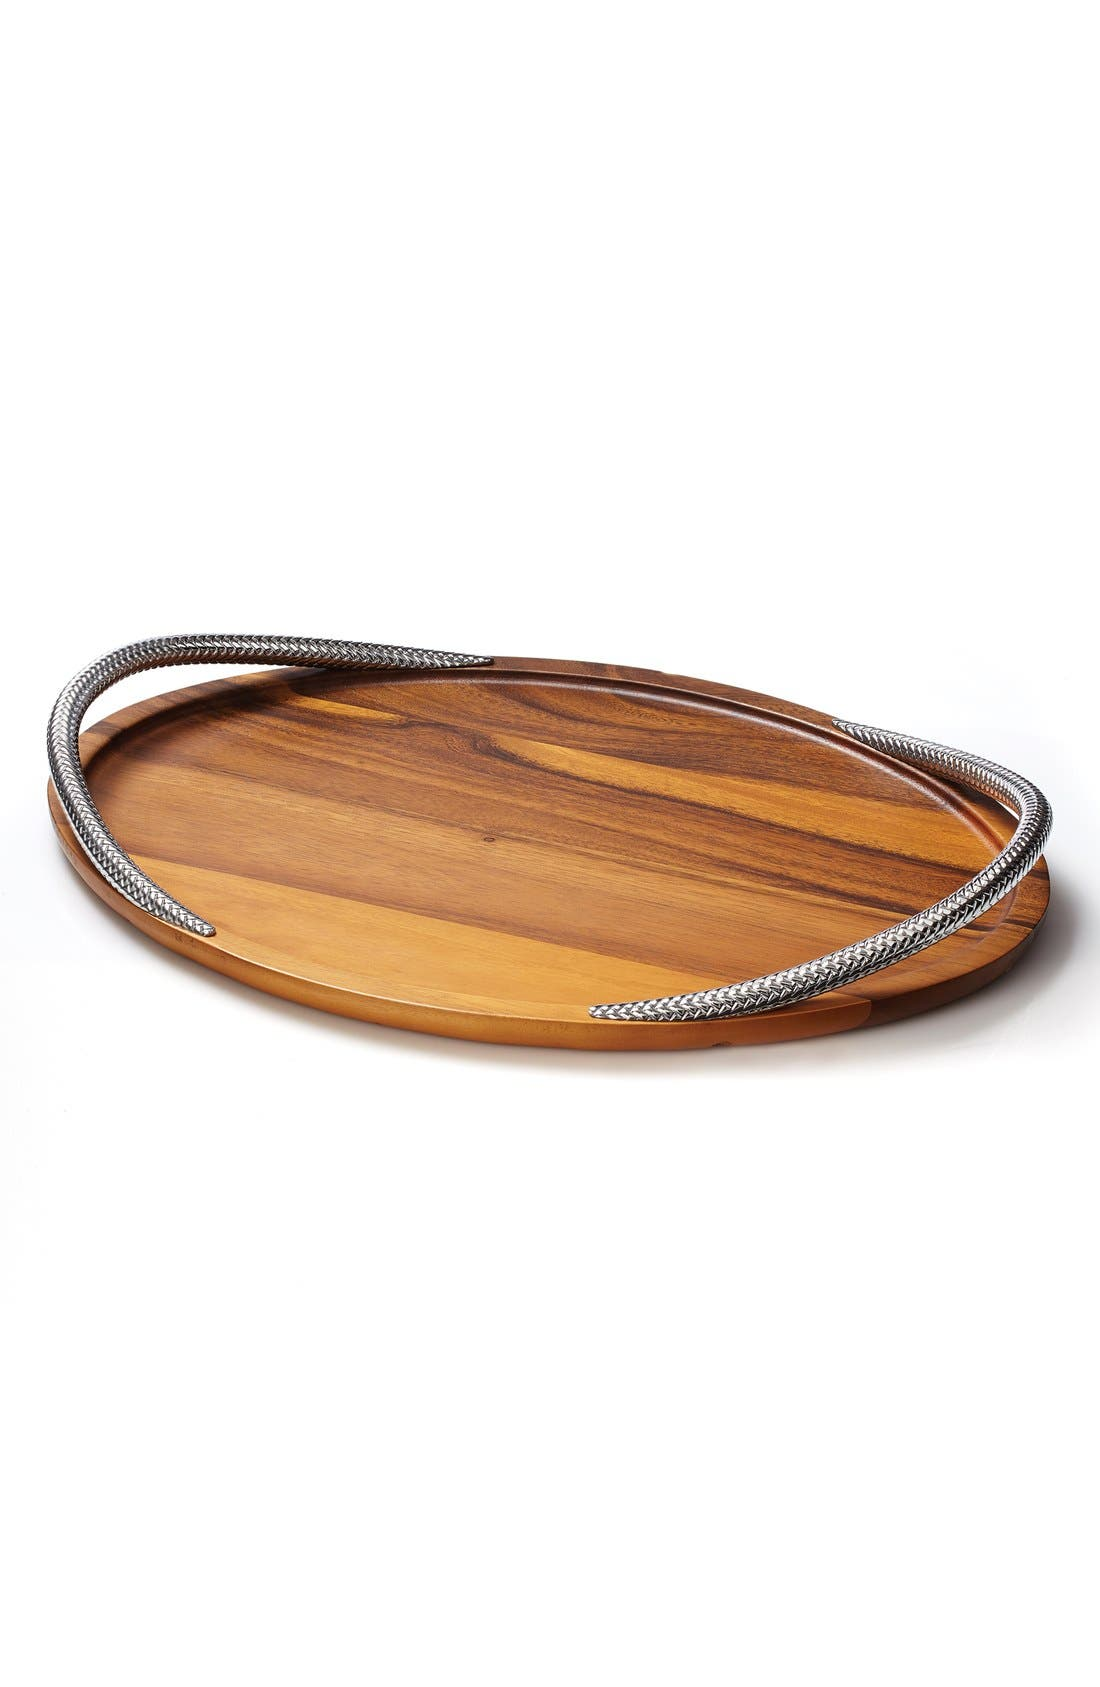 NAMBÉ Braid Serving Tray